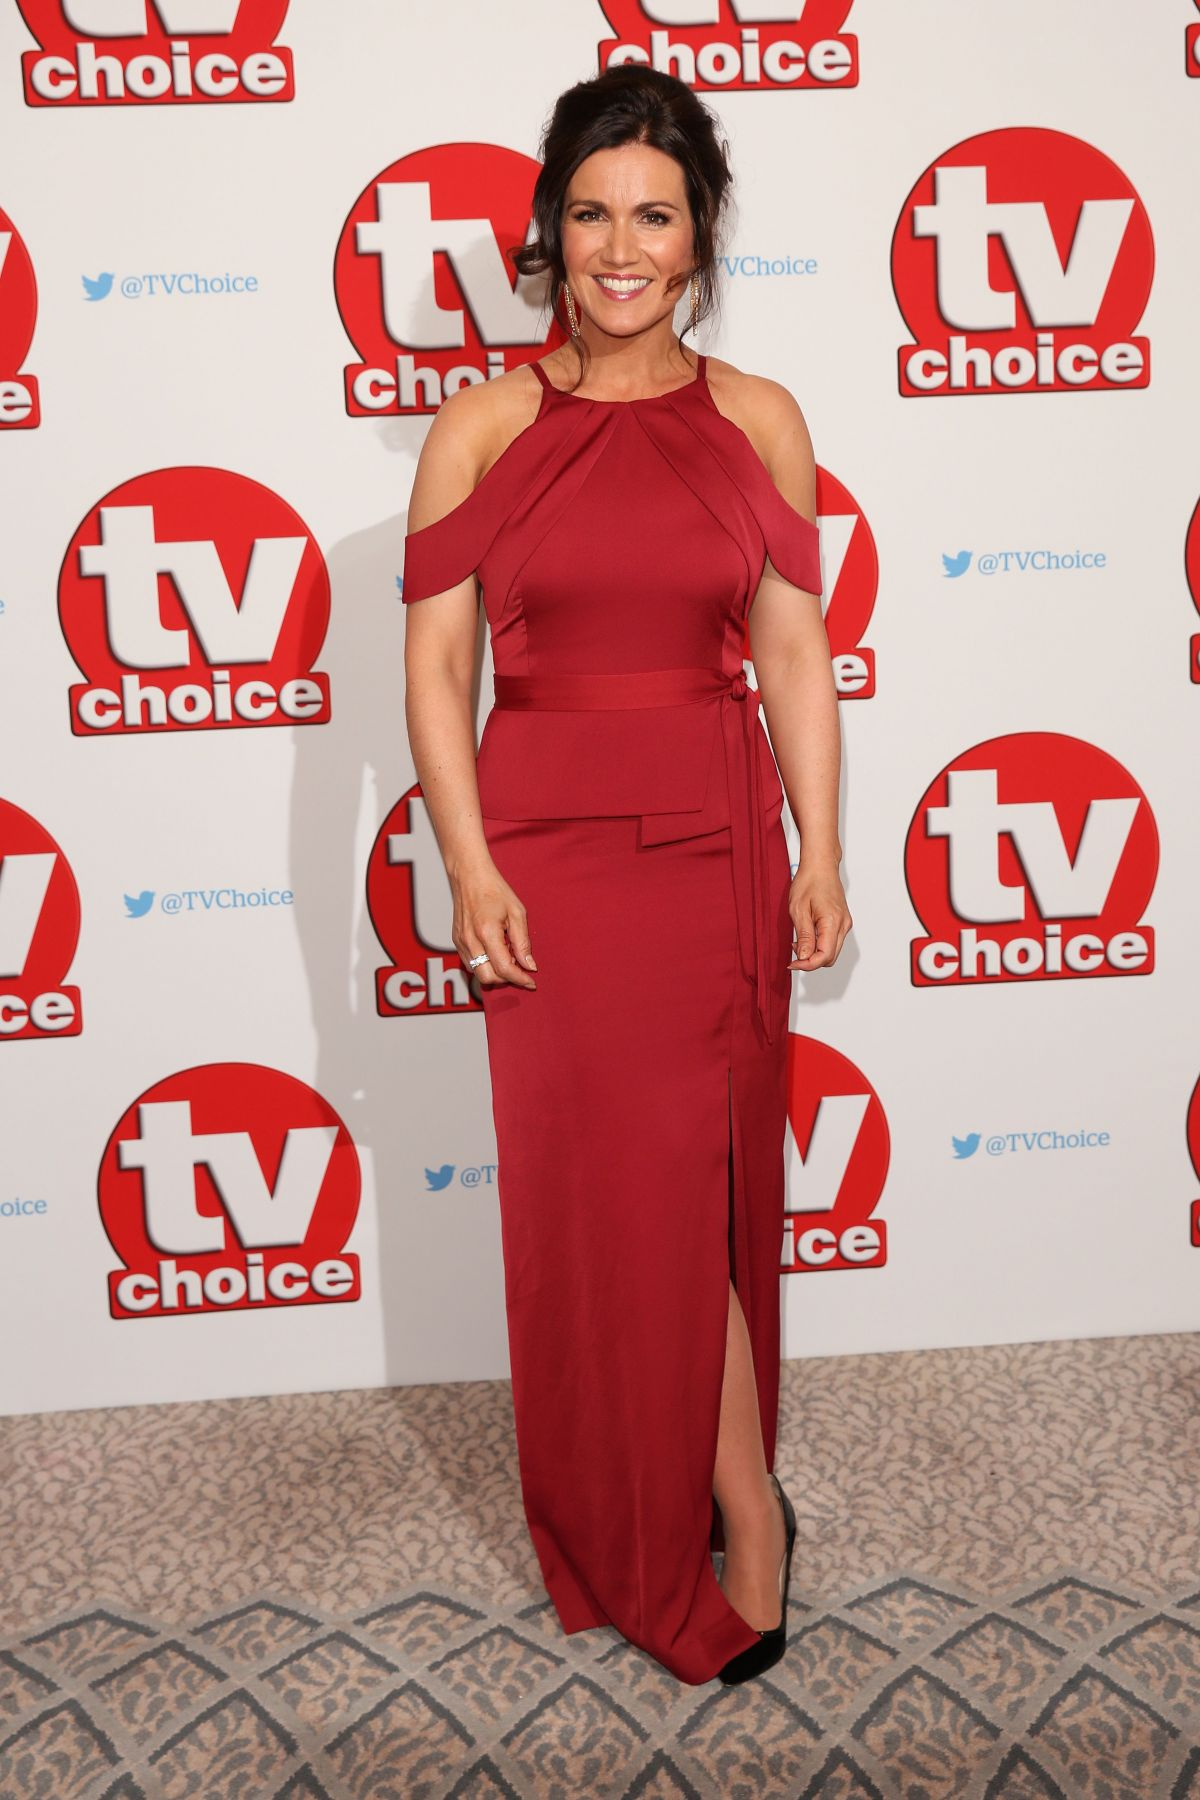 SUSANNA REID at TV Choice Awards in London 09/05/2016